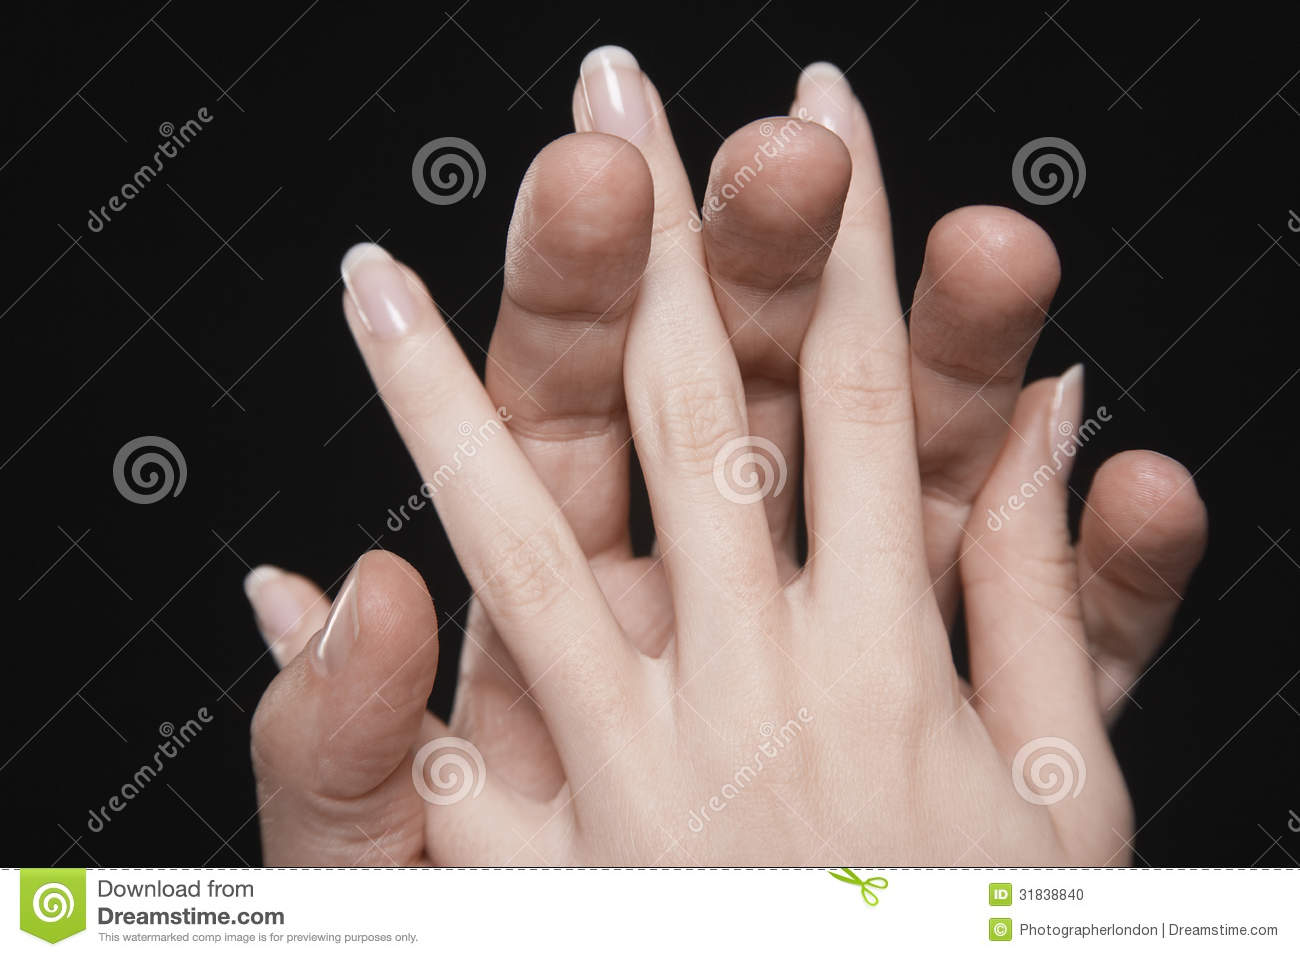 Holding hands  Wikipedia